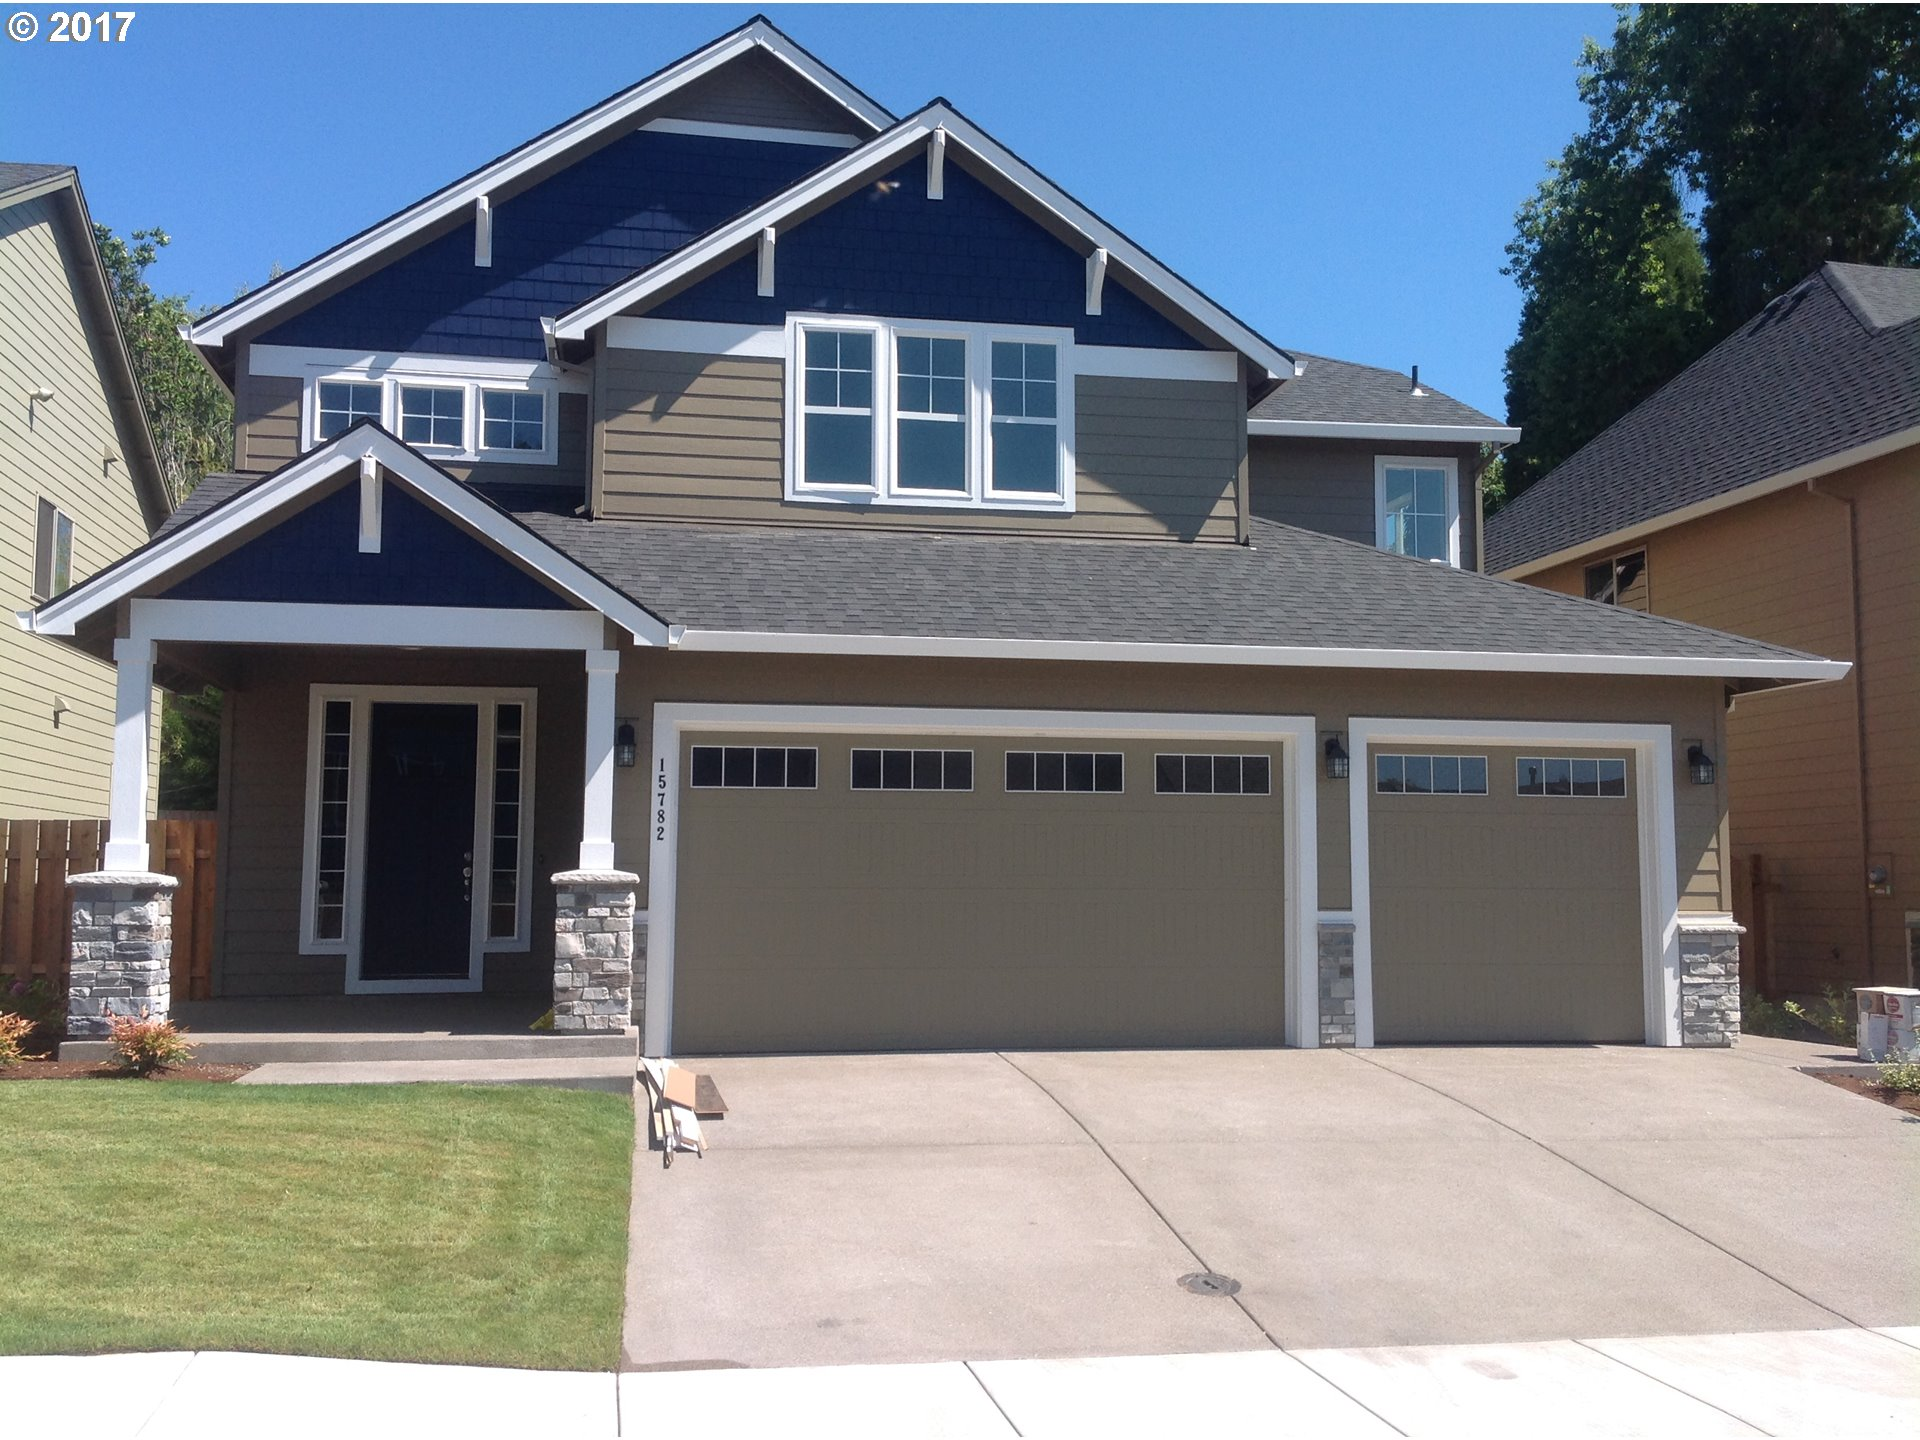 """Builder Bucks"" $8000 towards closing costs. Oak Grove's newest neighborhood Concord Oaks. Open floor plan with designer finishes. Slab granite kitchen counter. SS Appliances. Covered Patio. Rendering and photos for visual reference only"